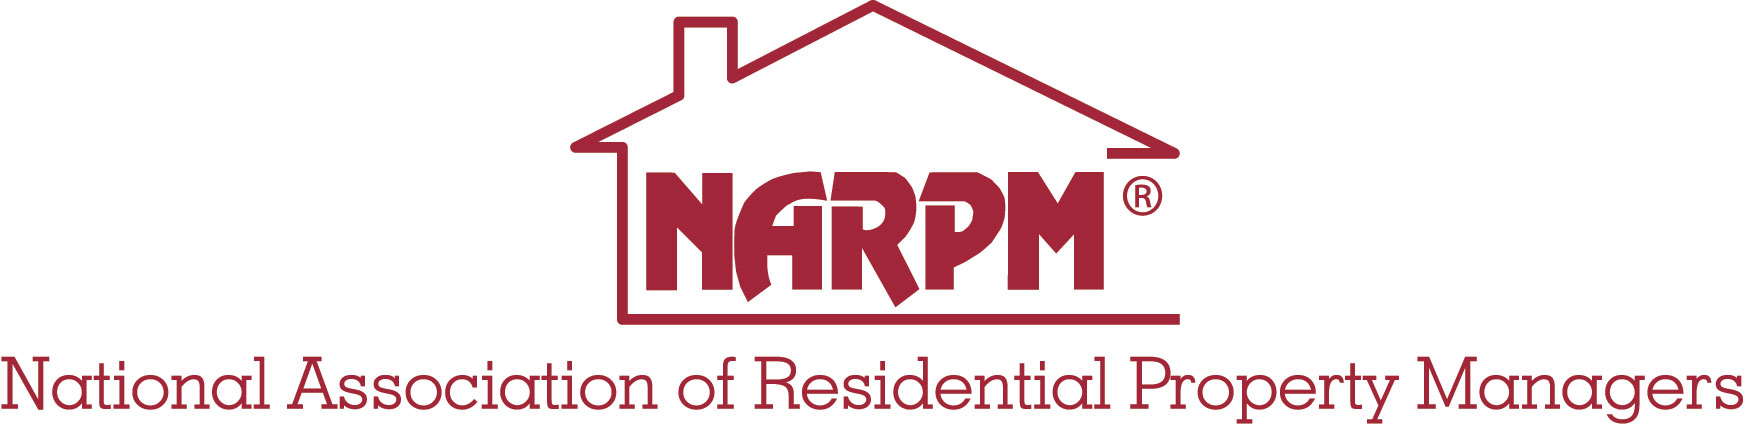 narpm-property-managers